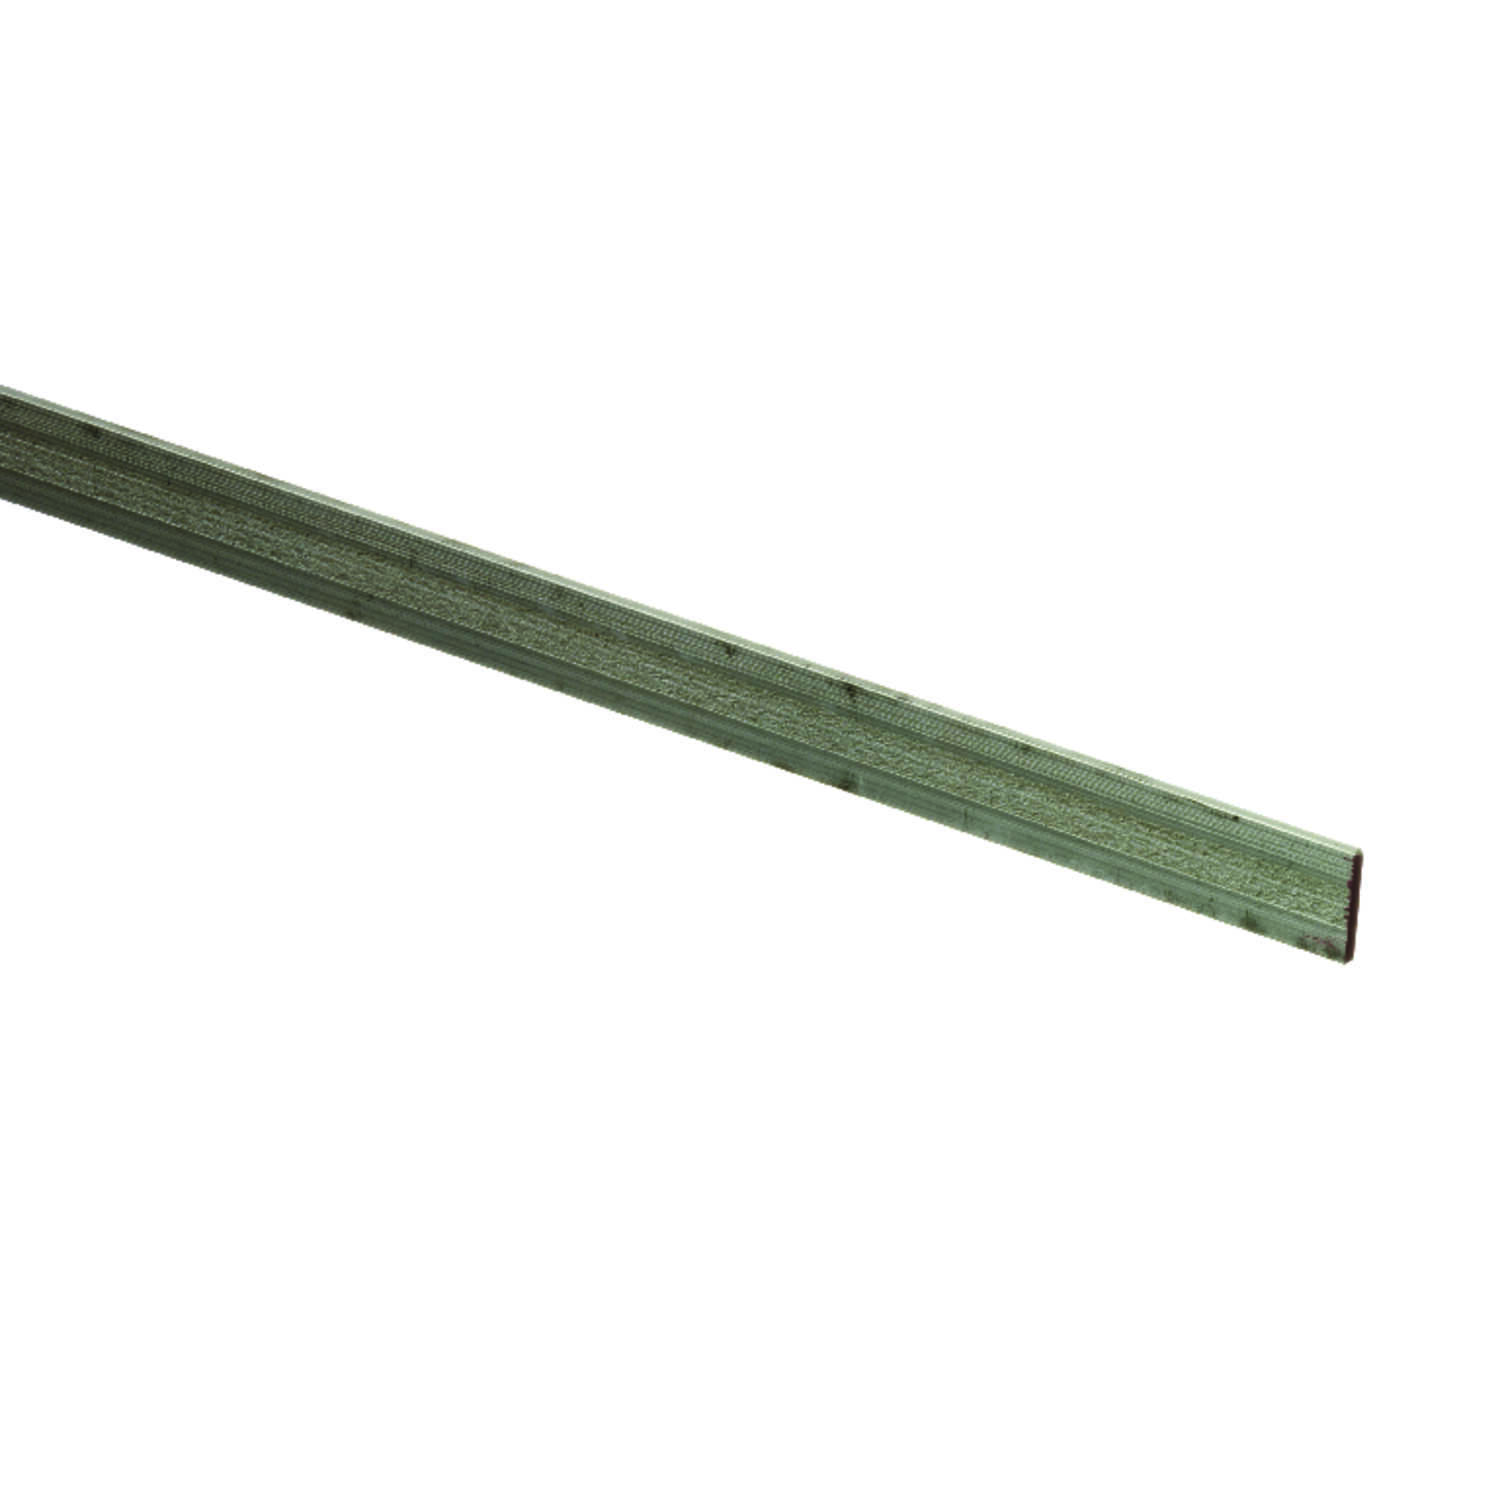 Boltmaster  0.125 in.  x 0.75 in. W x 8 ft. L Weldable Aluminum Flat Bar  1 pk